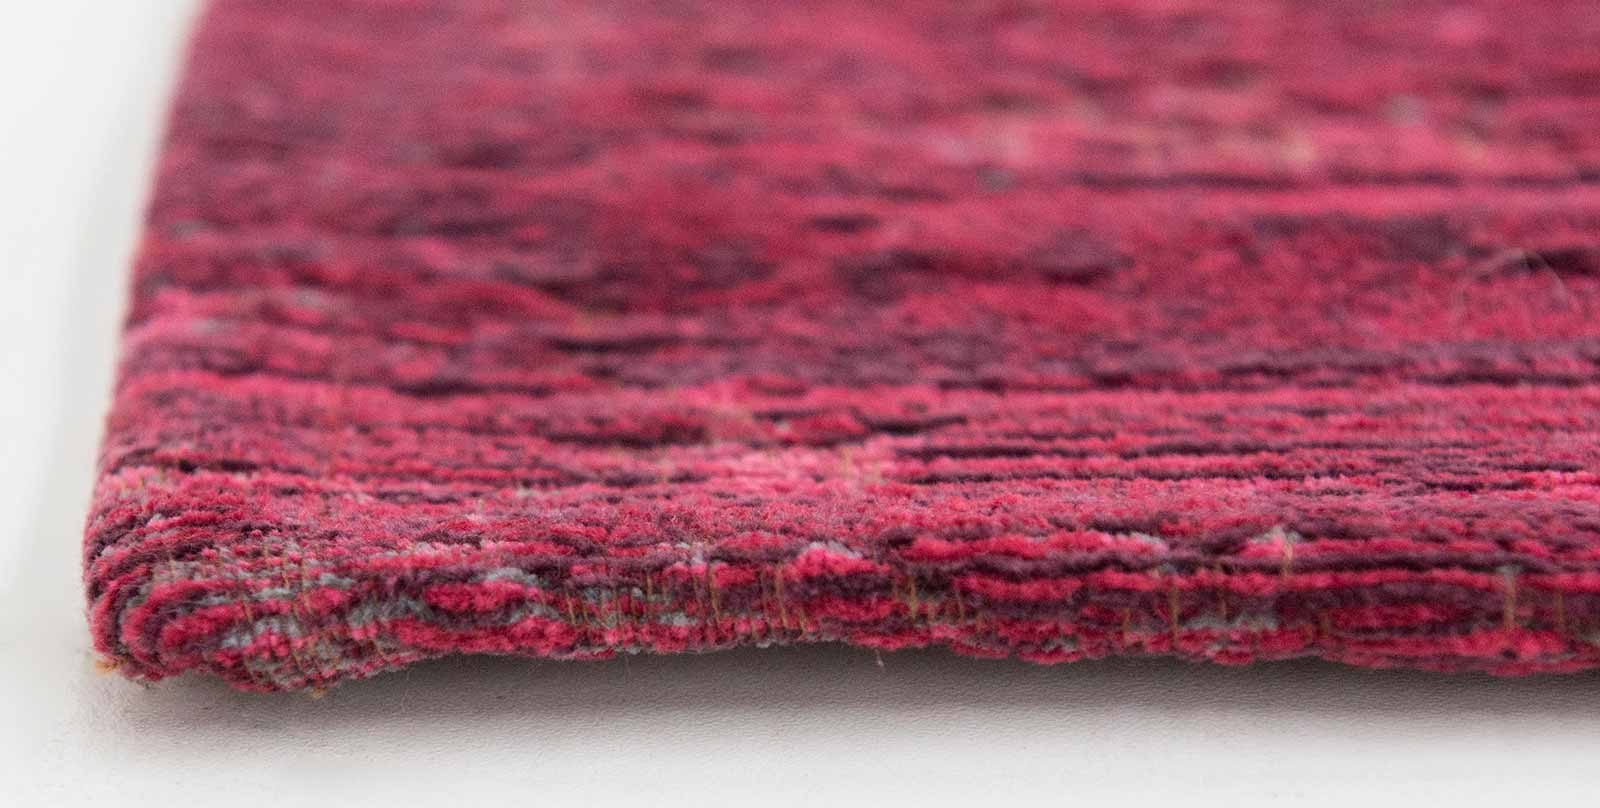 rug Louis De Poortere LX8260 Fading World Medaillon Scarlet side